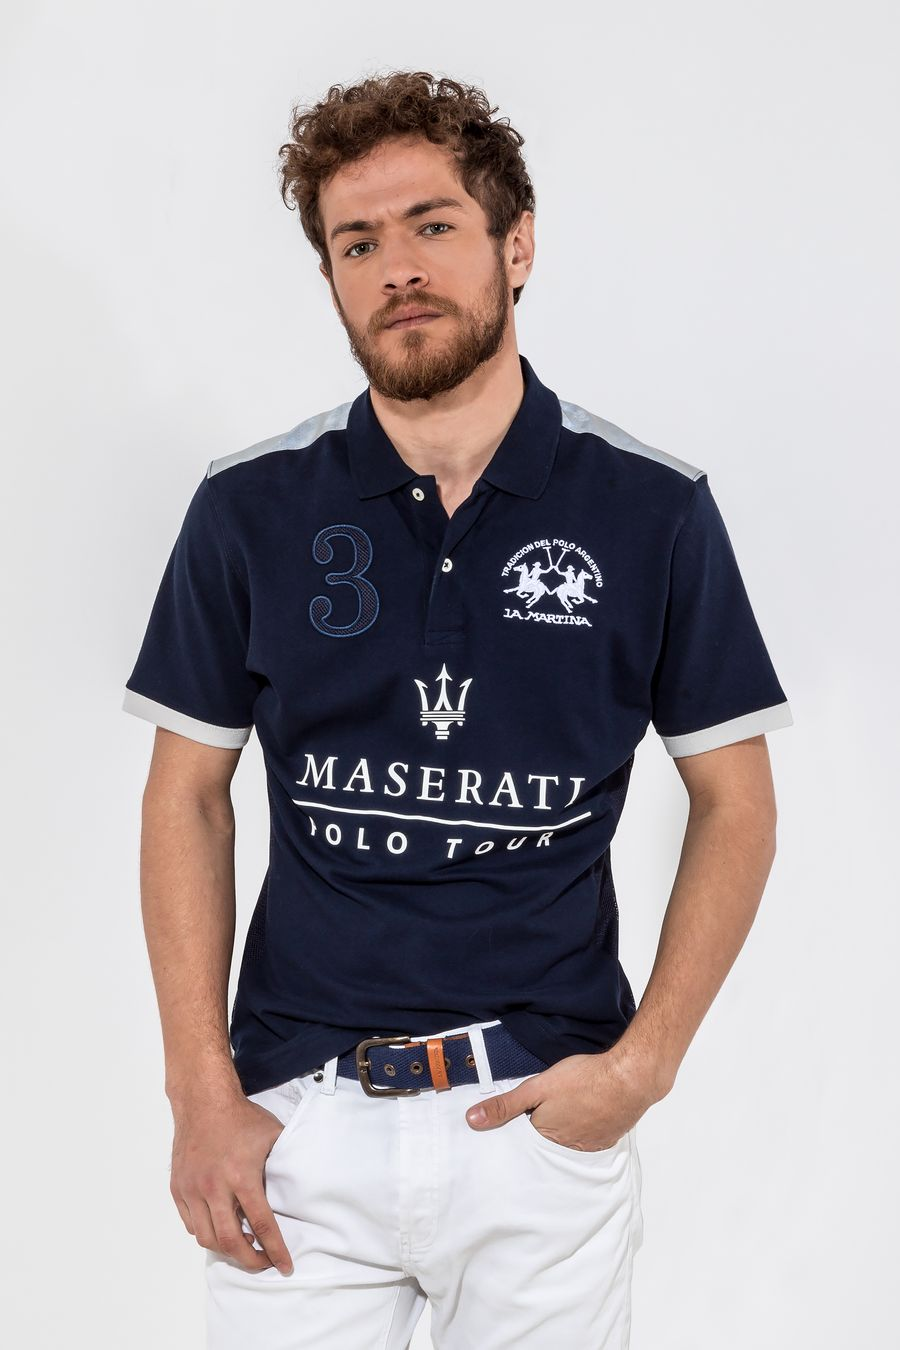 POLO-EQ-MC-MASERATI-POLO-TOUR-LMP-M32-NAVY